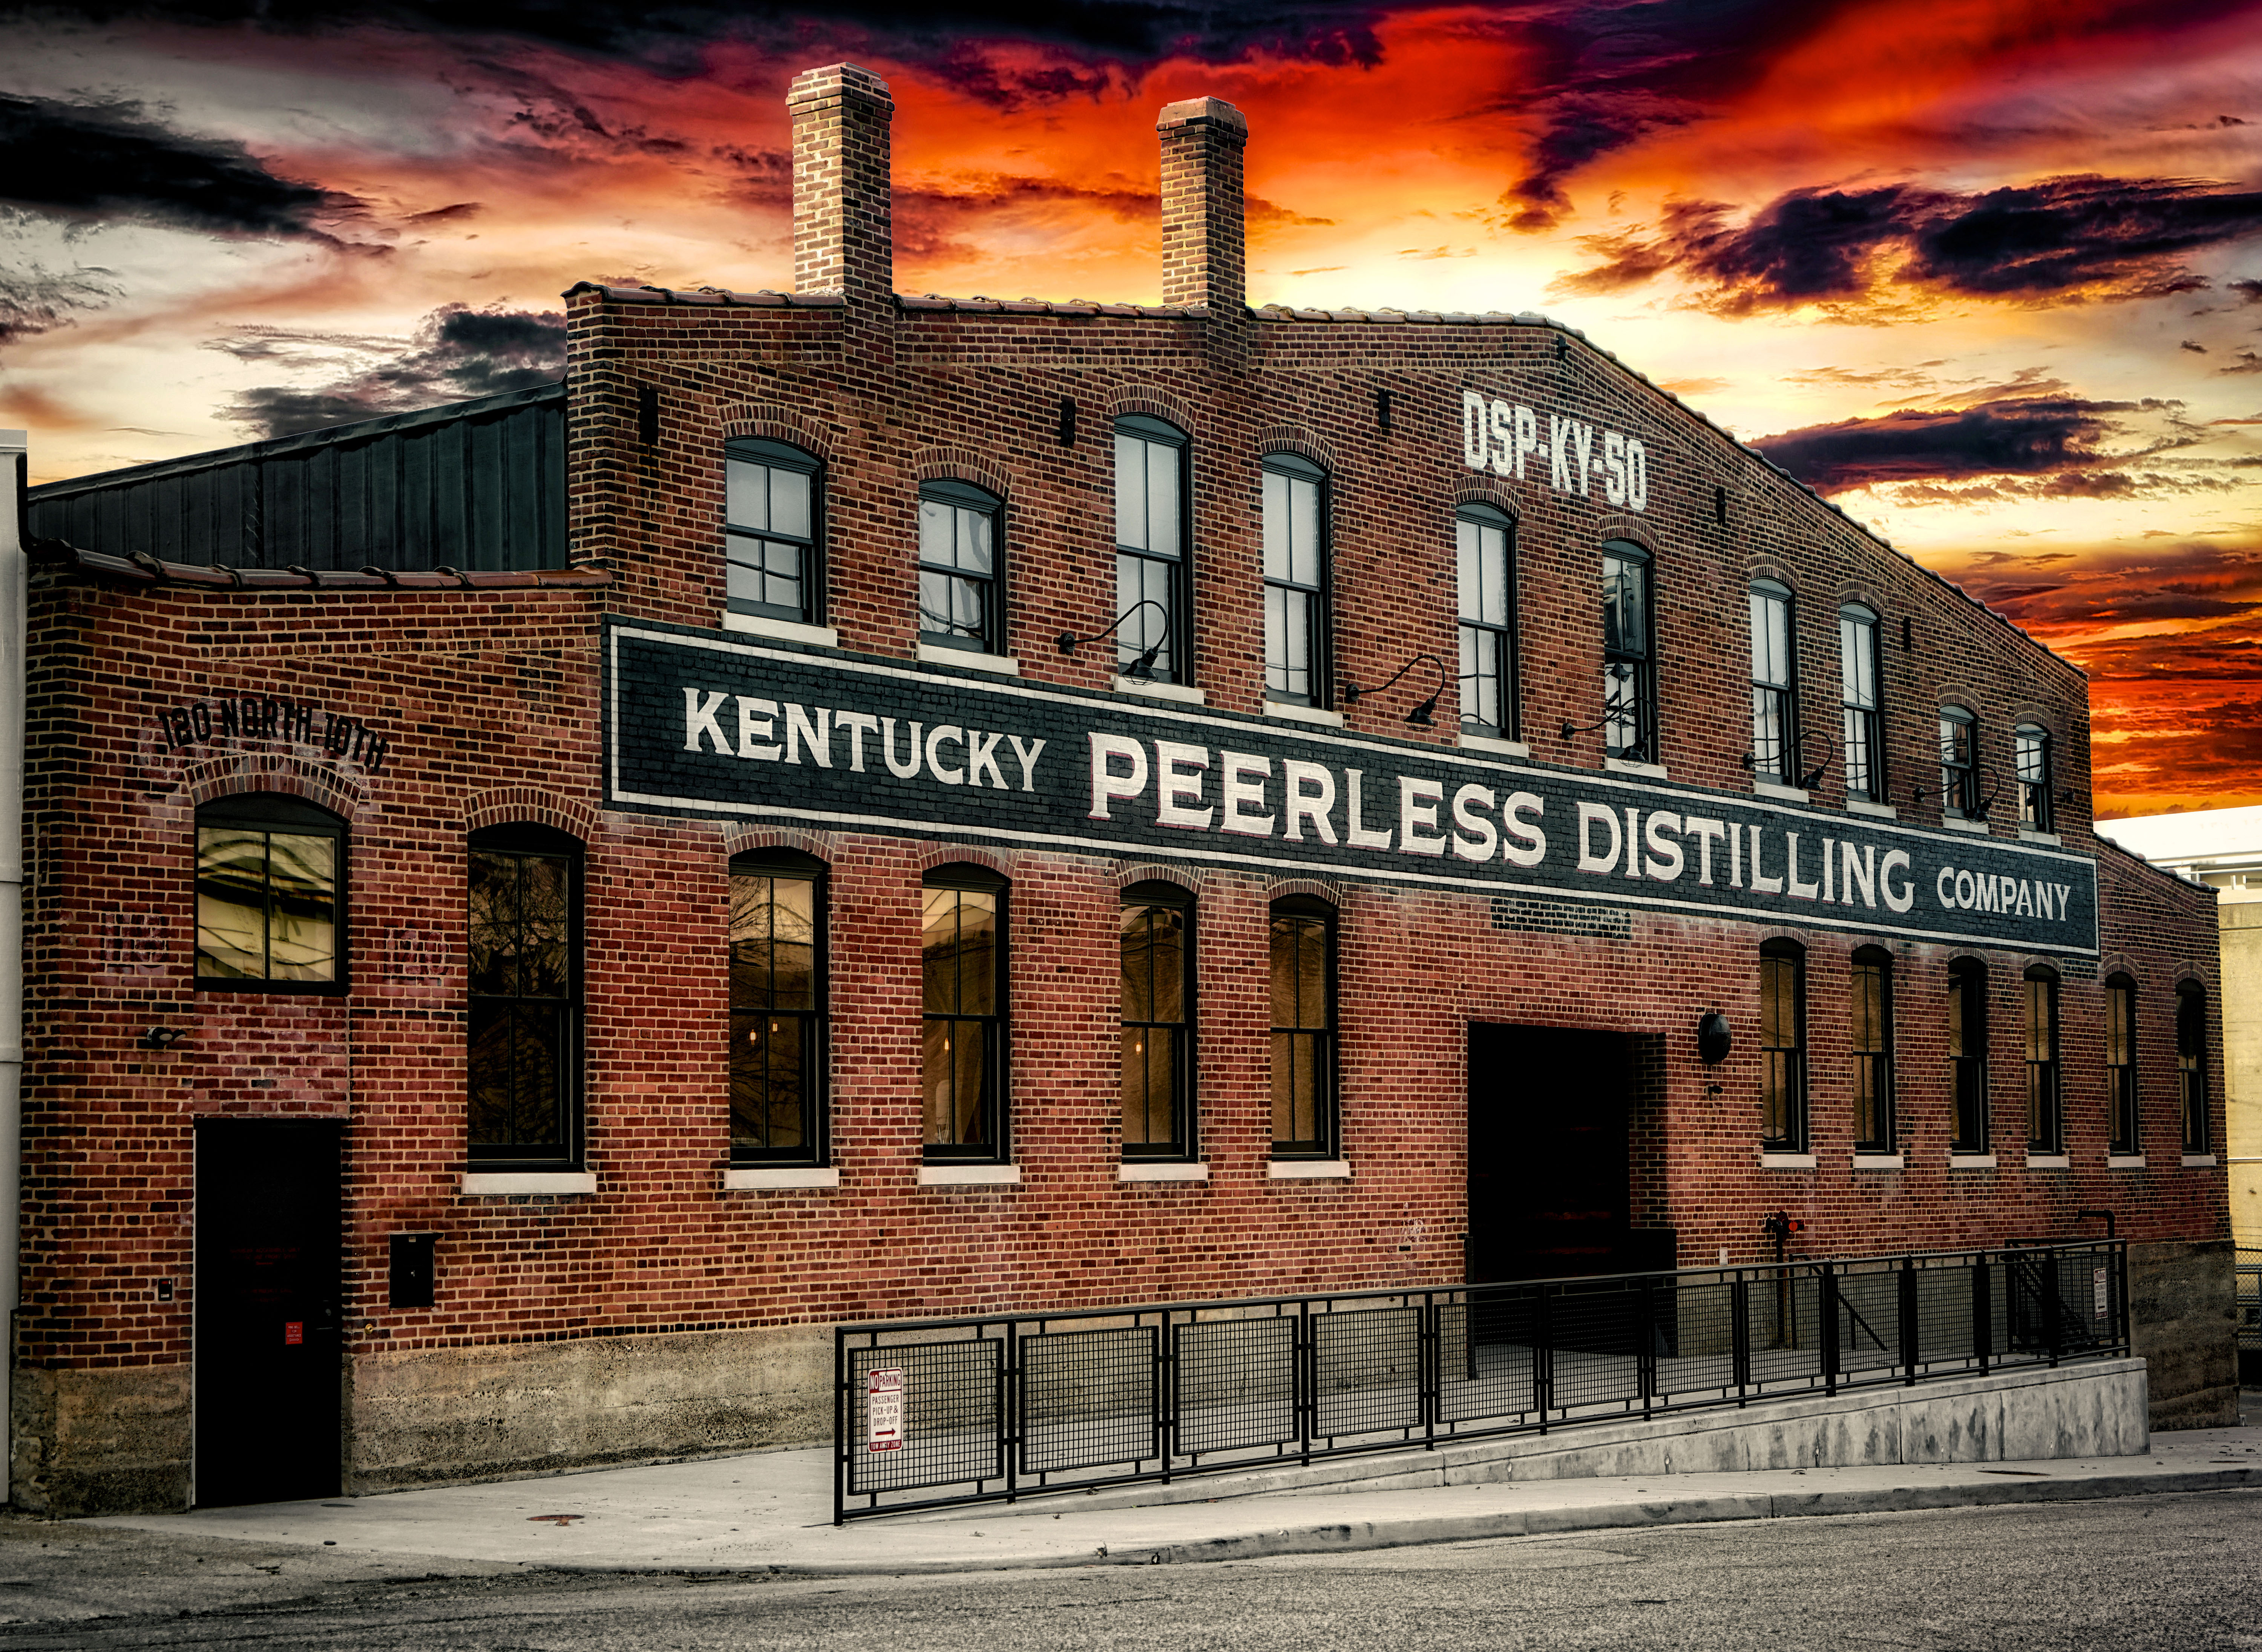 Kentucky Peerless Distilling Co Exterior distillery